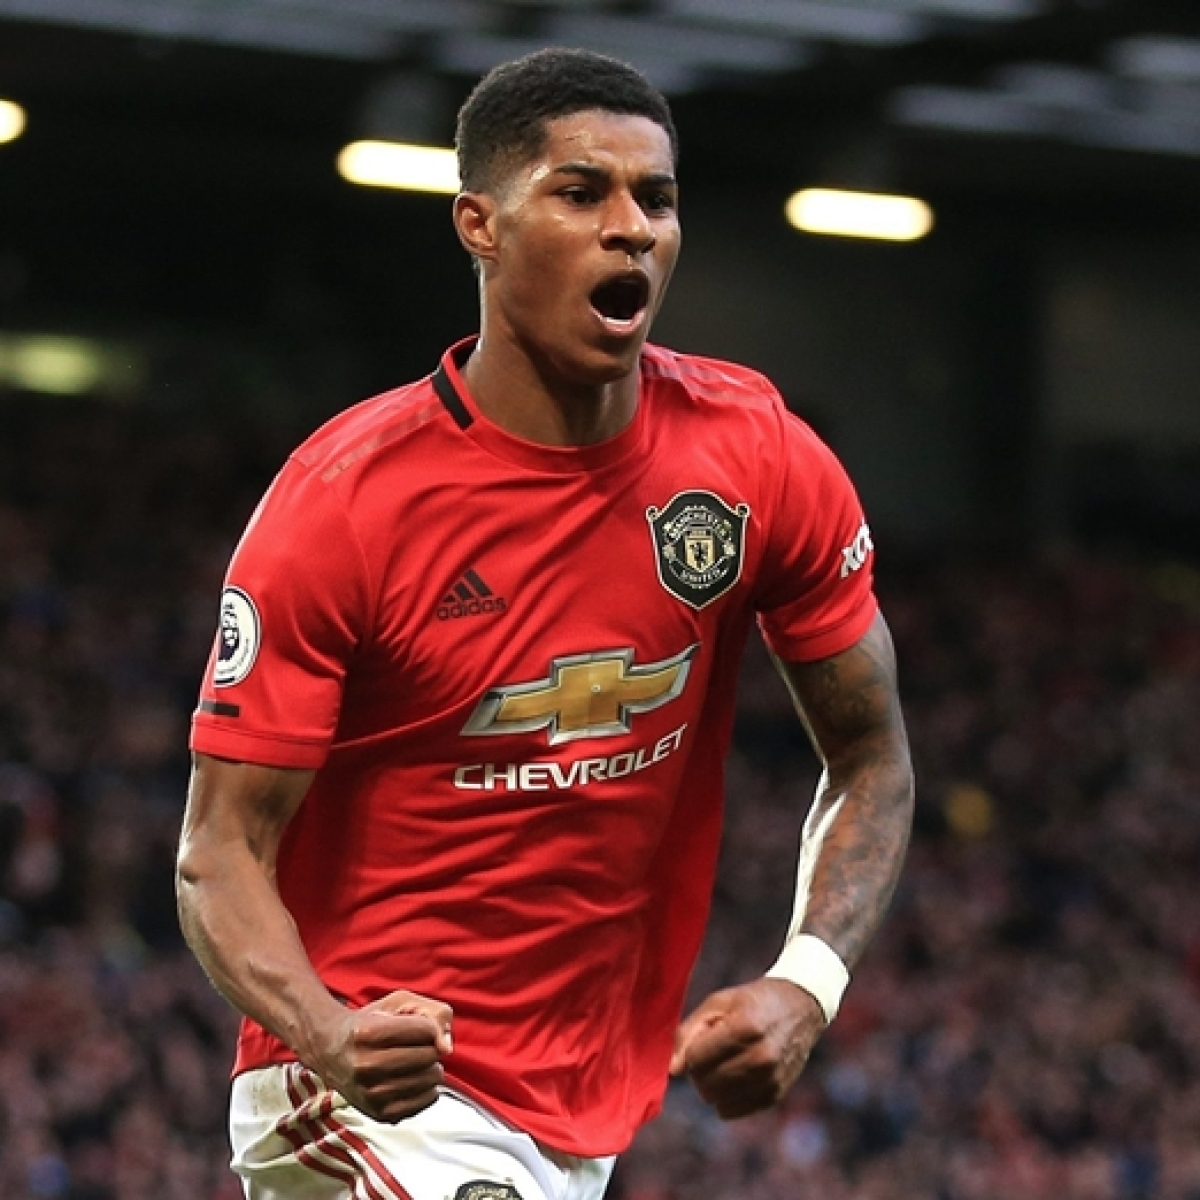 Watch: Rashford reminds Man Utd fans of Ronaldo with stunning free-kick to beat Chelsea 2-1in Carabao Cup